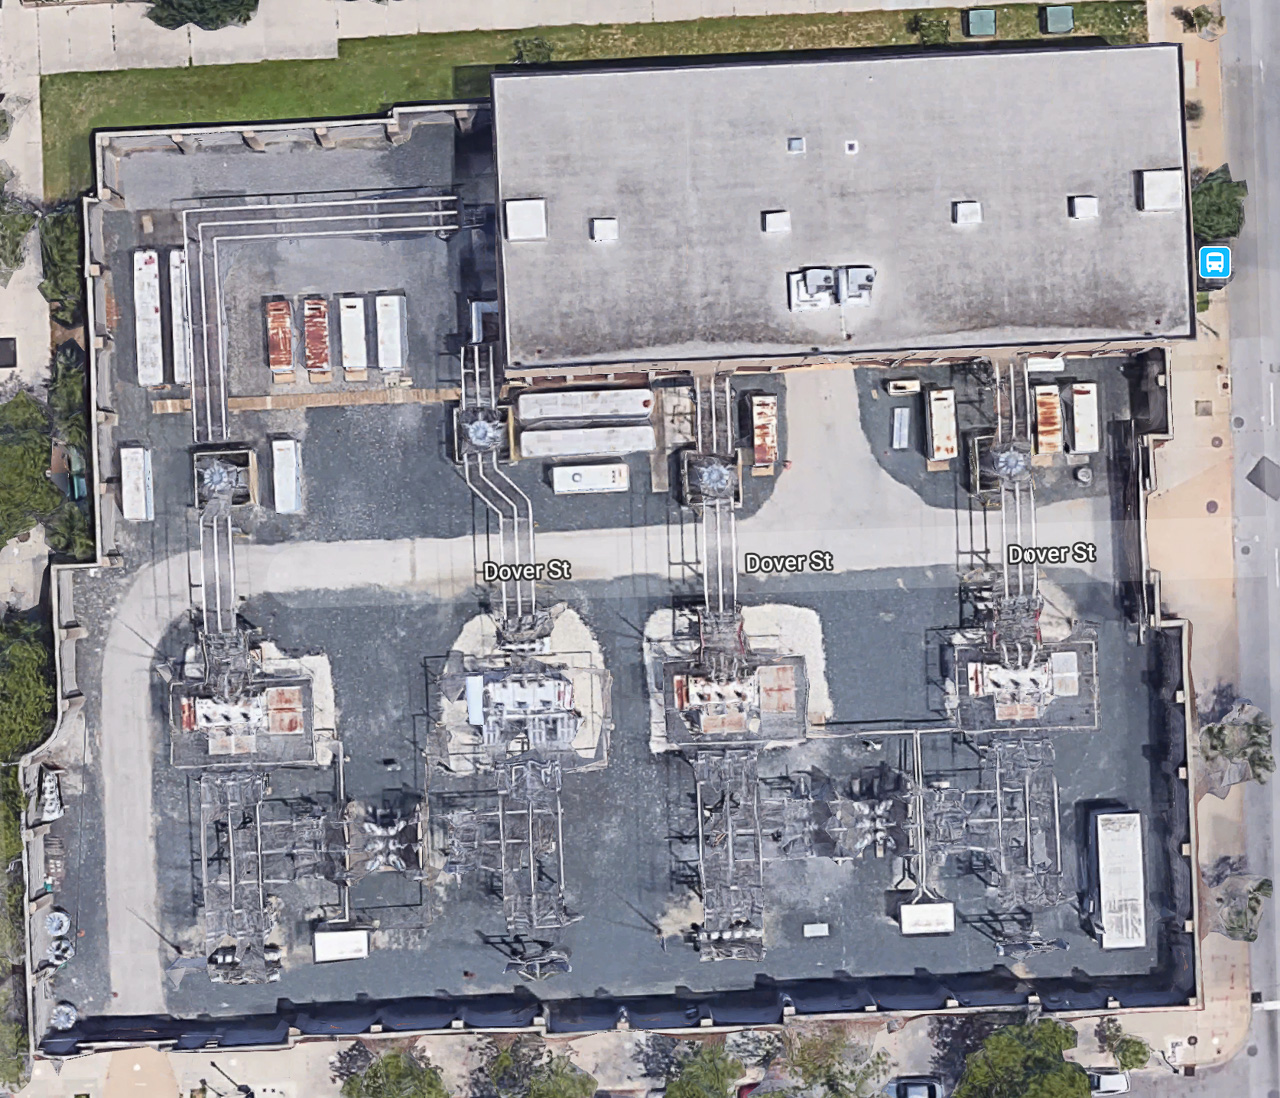 Google Maps view of Greene Street substation